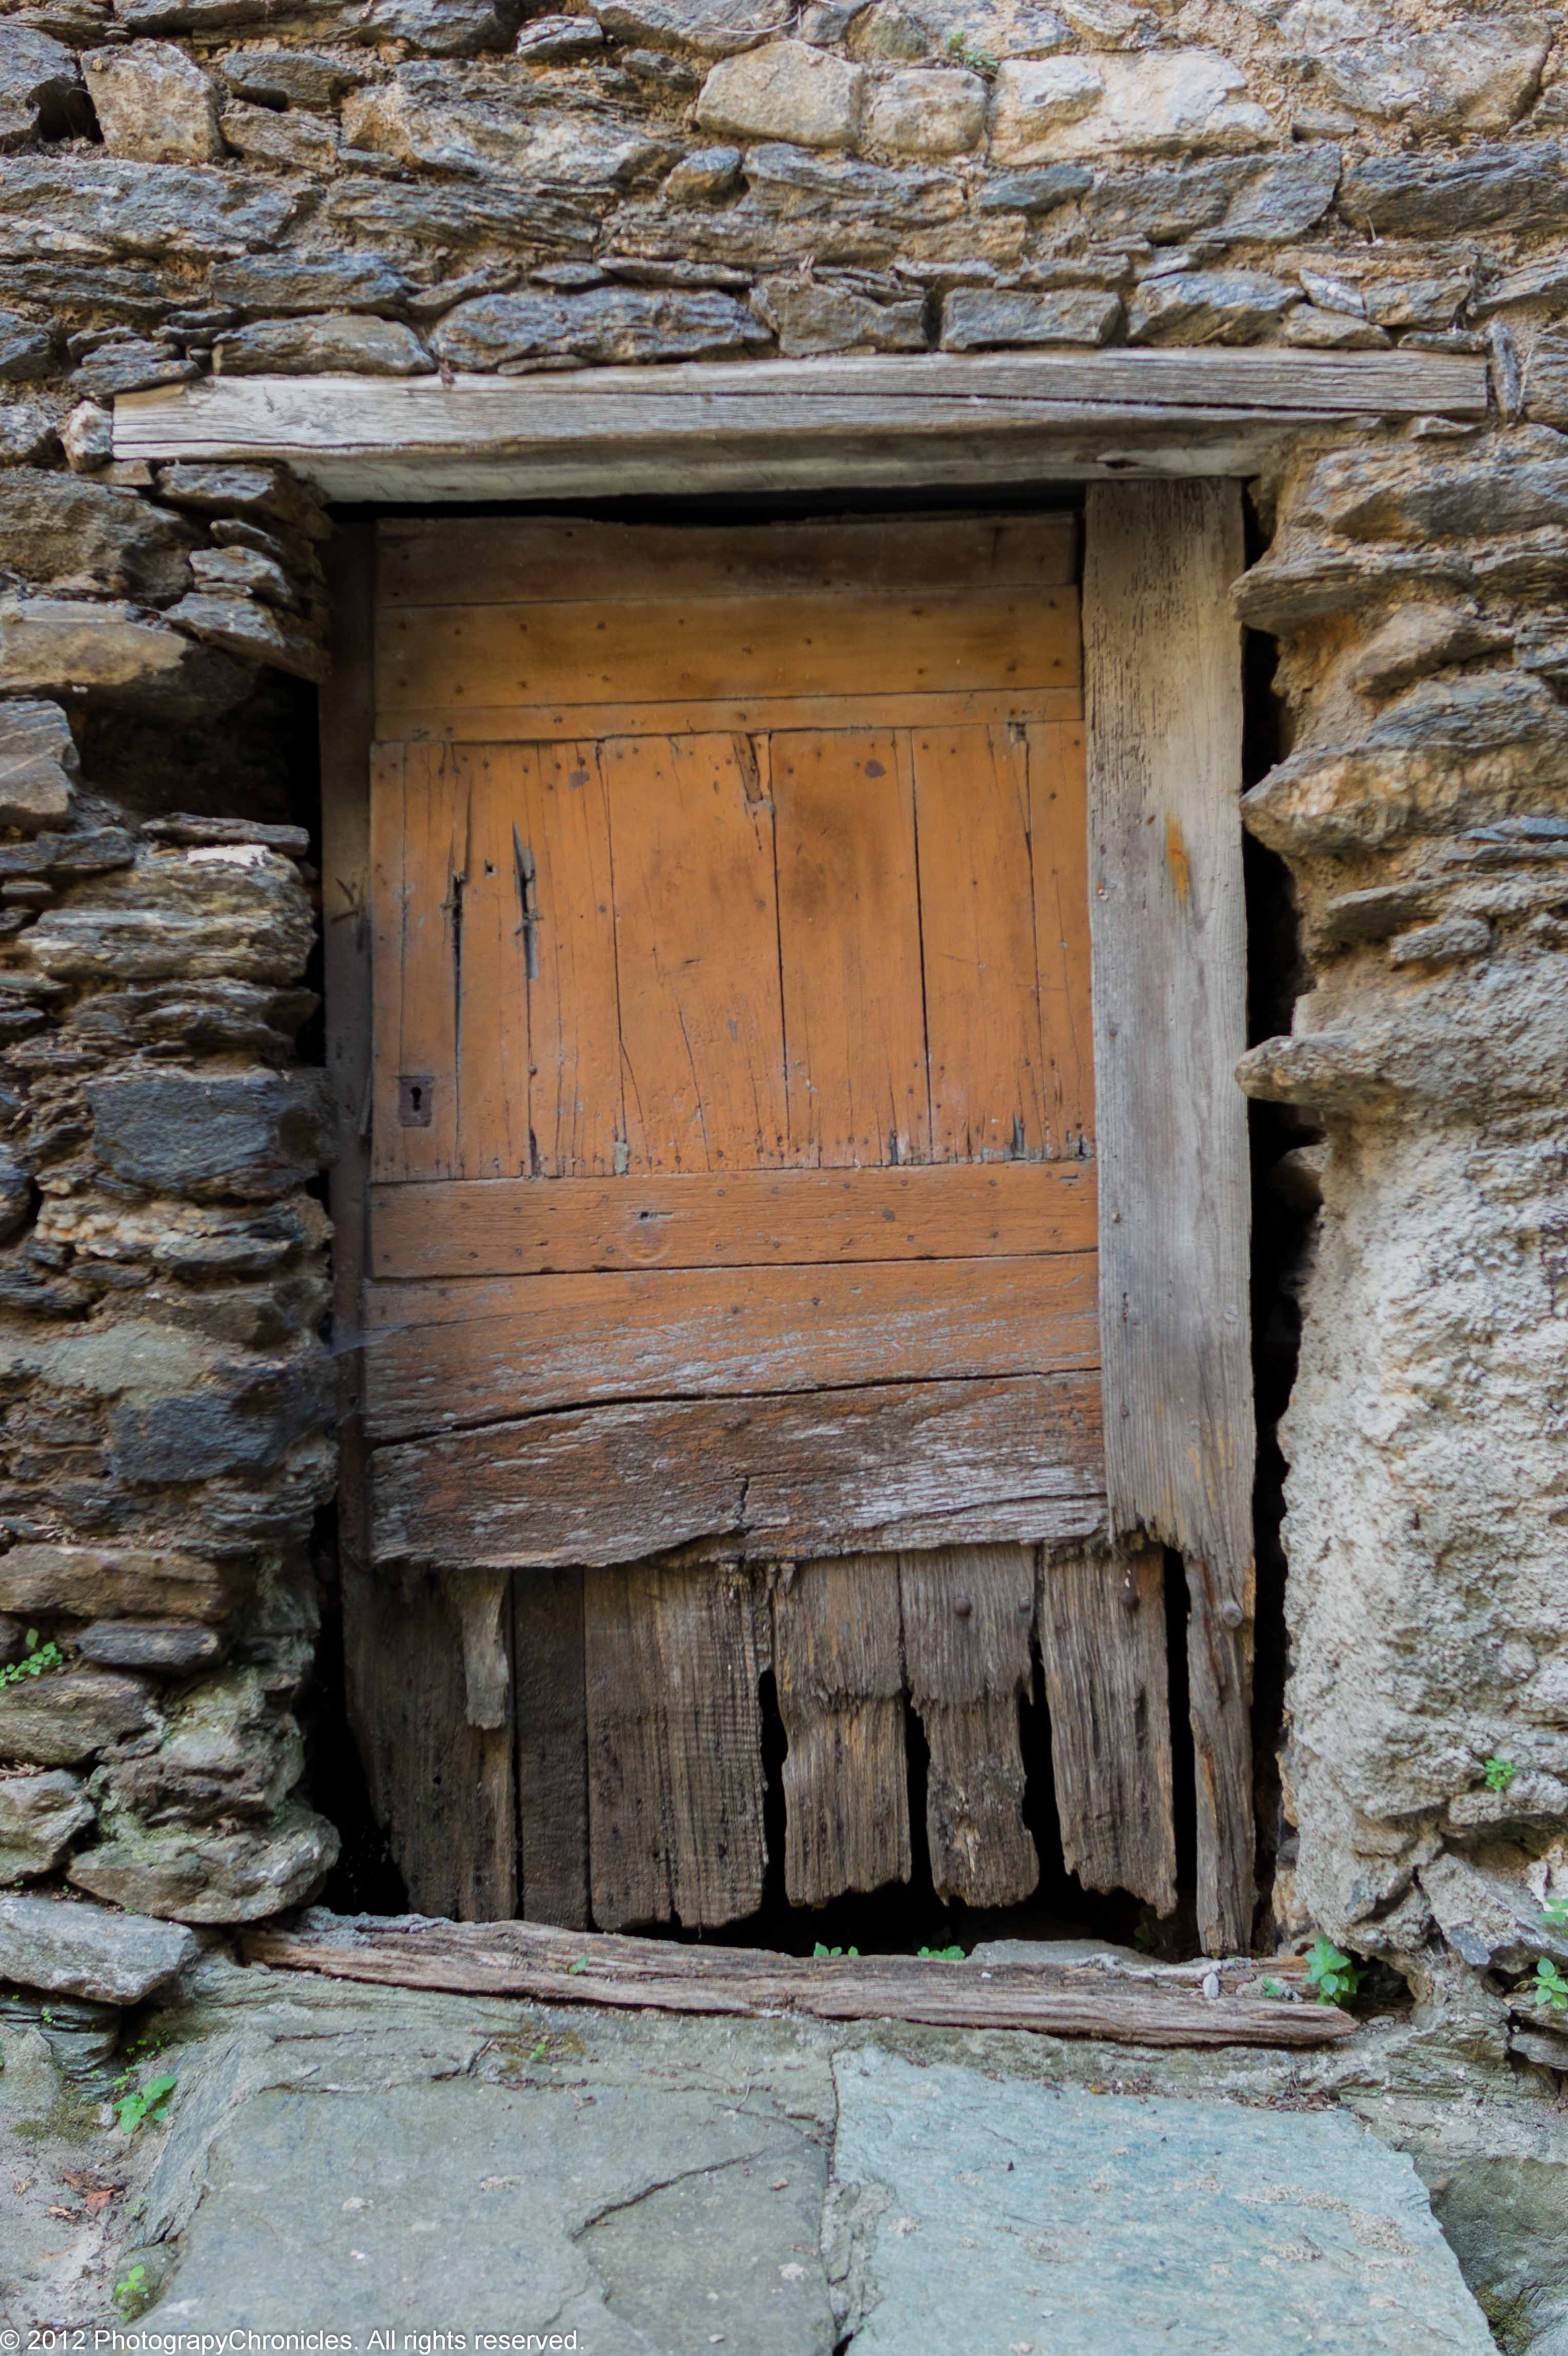 Rustic Doors Ndash Part I Filip Ghinea Photography Chronicles